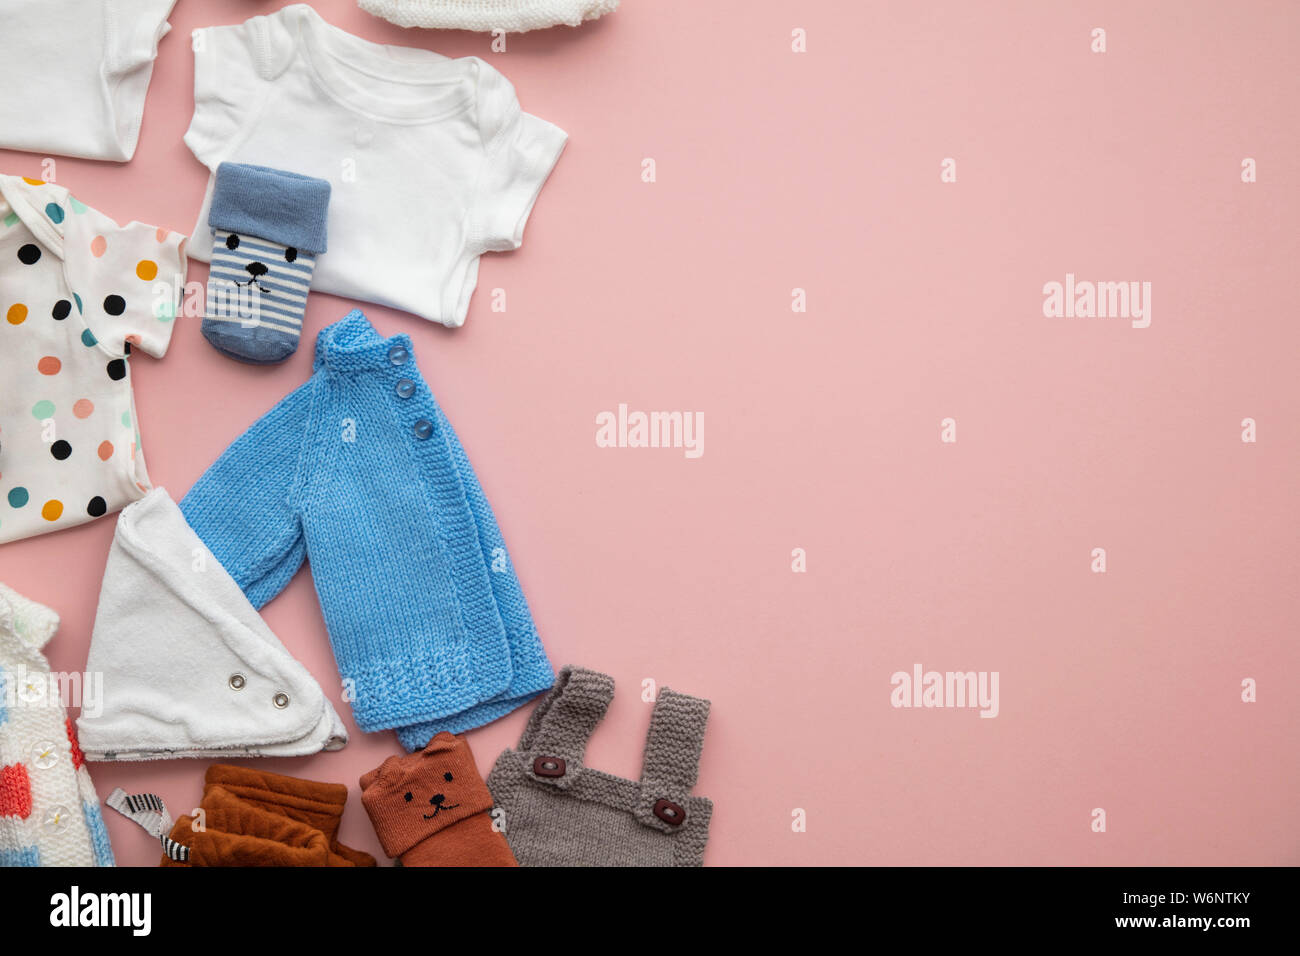 Cute Baby Clothes Layout On A Pastel Pink Background Stock Photo